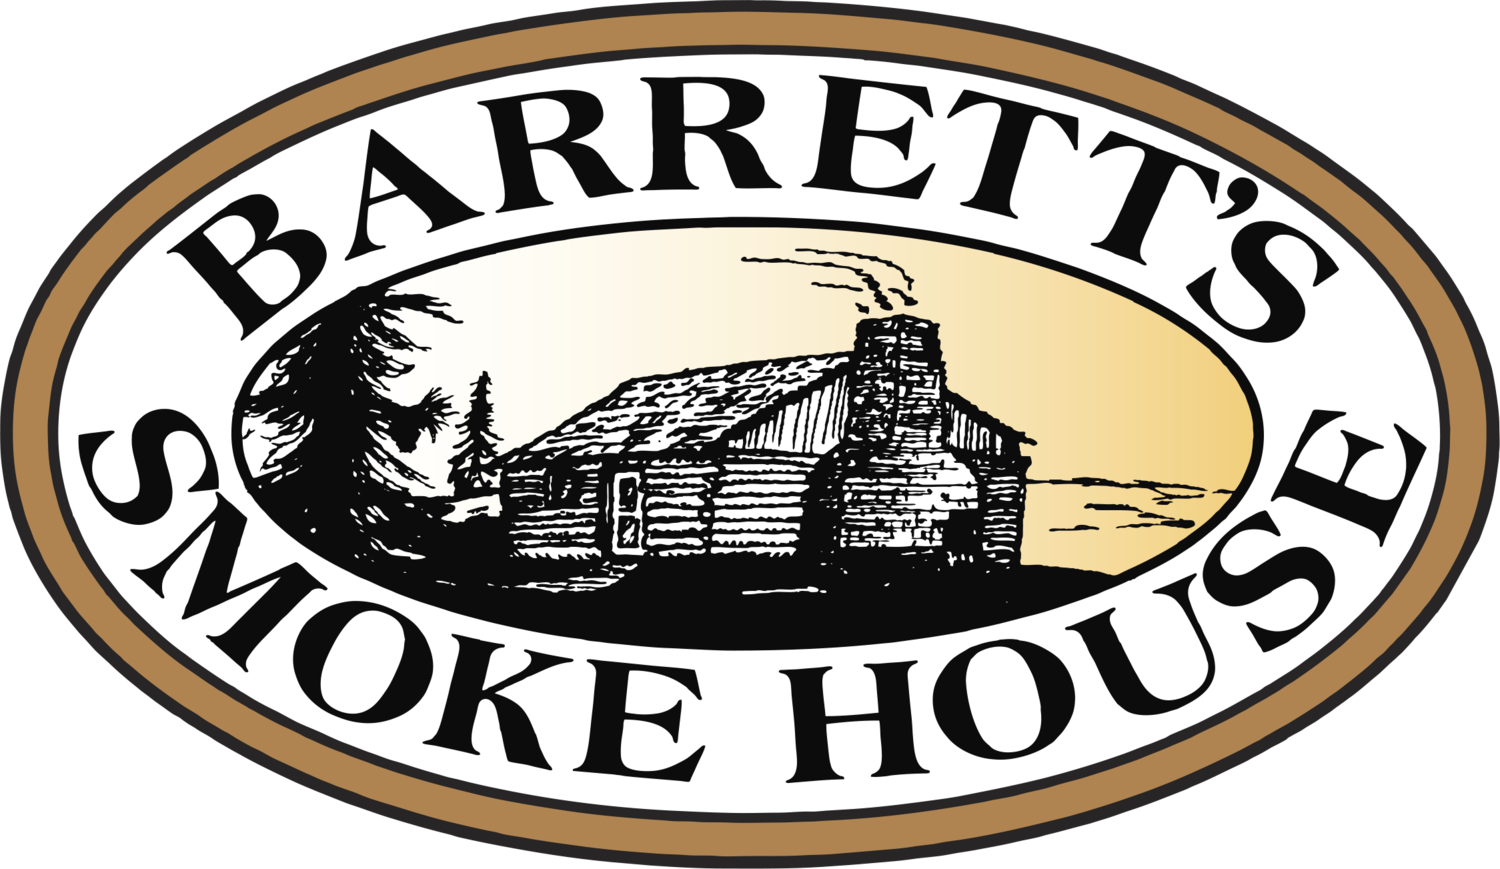 Barretts Smokehouse